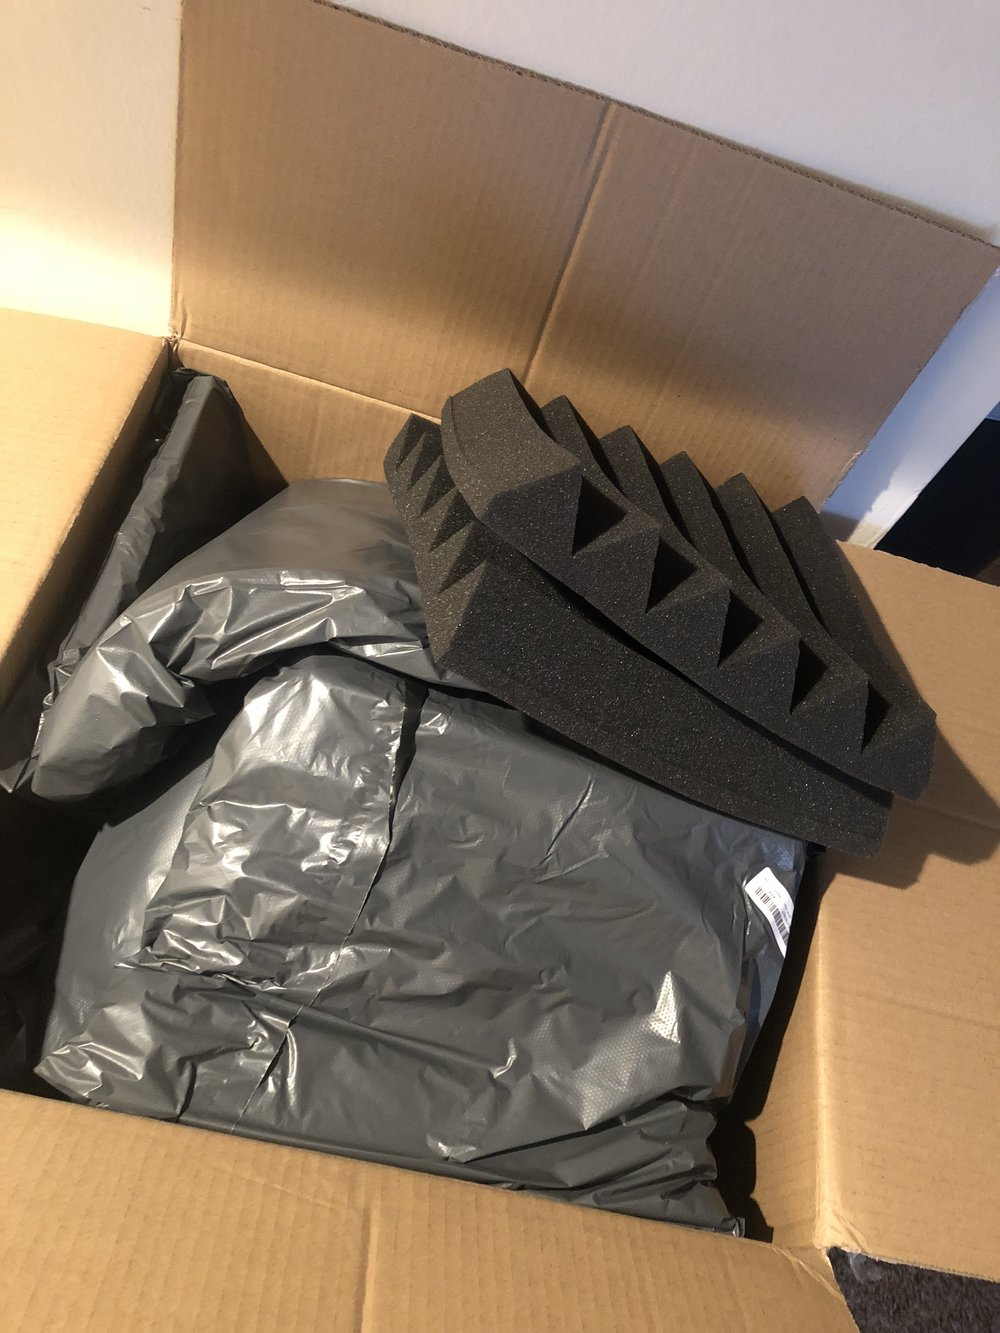 Create the greatest experience - Our studio acoustic foam JUST ARRIVED! We are excited to begin part 1 of this process. We will be posting more photos in the days to come as we embark on the beginning of Open House Studios, an extension of 4ONEthree Productions.